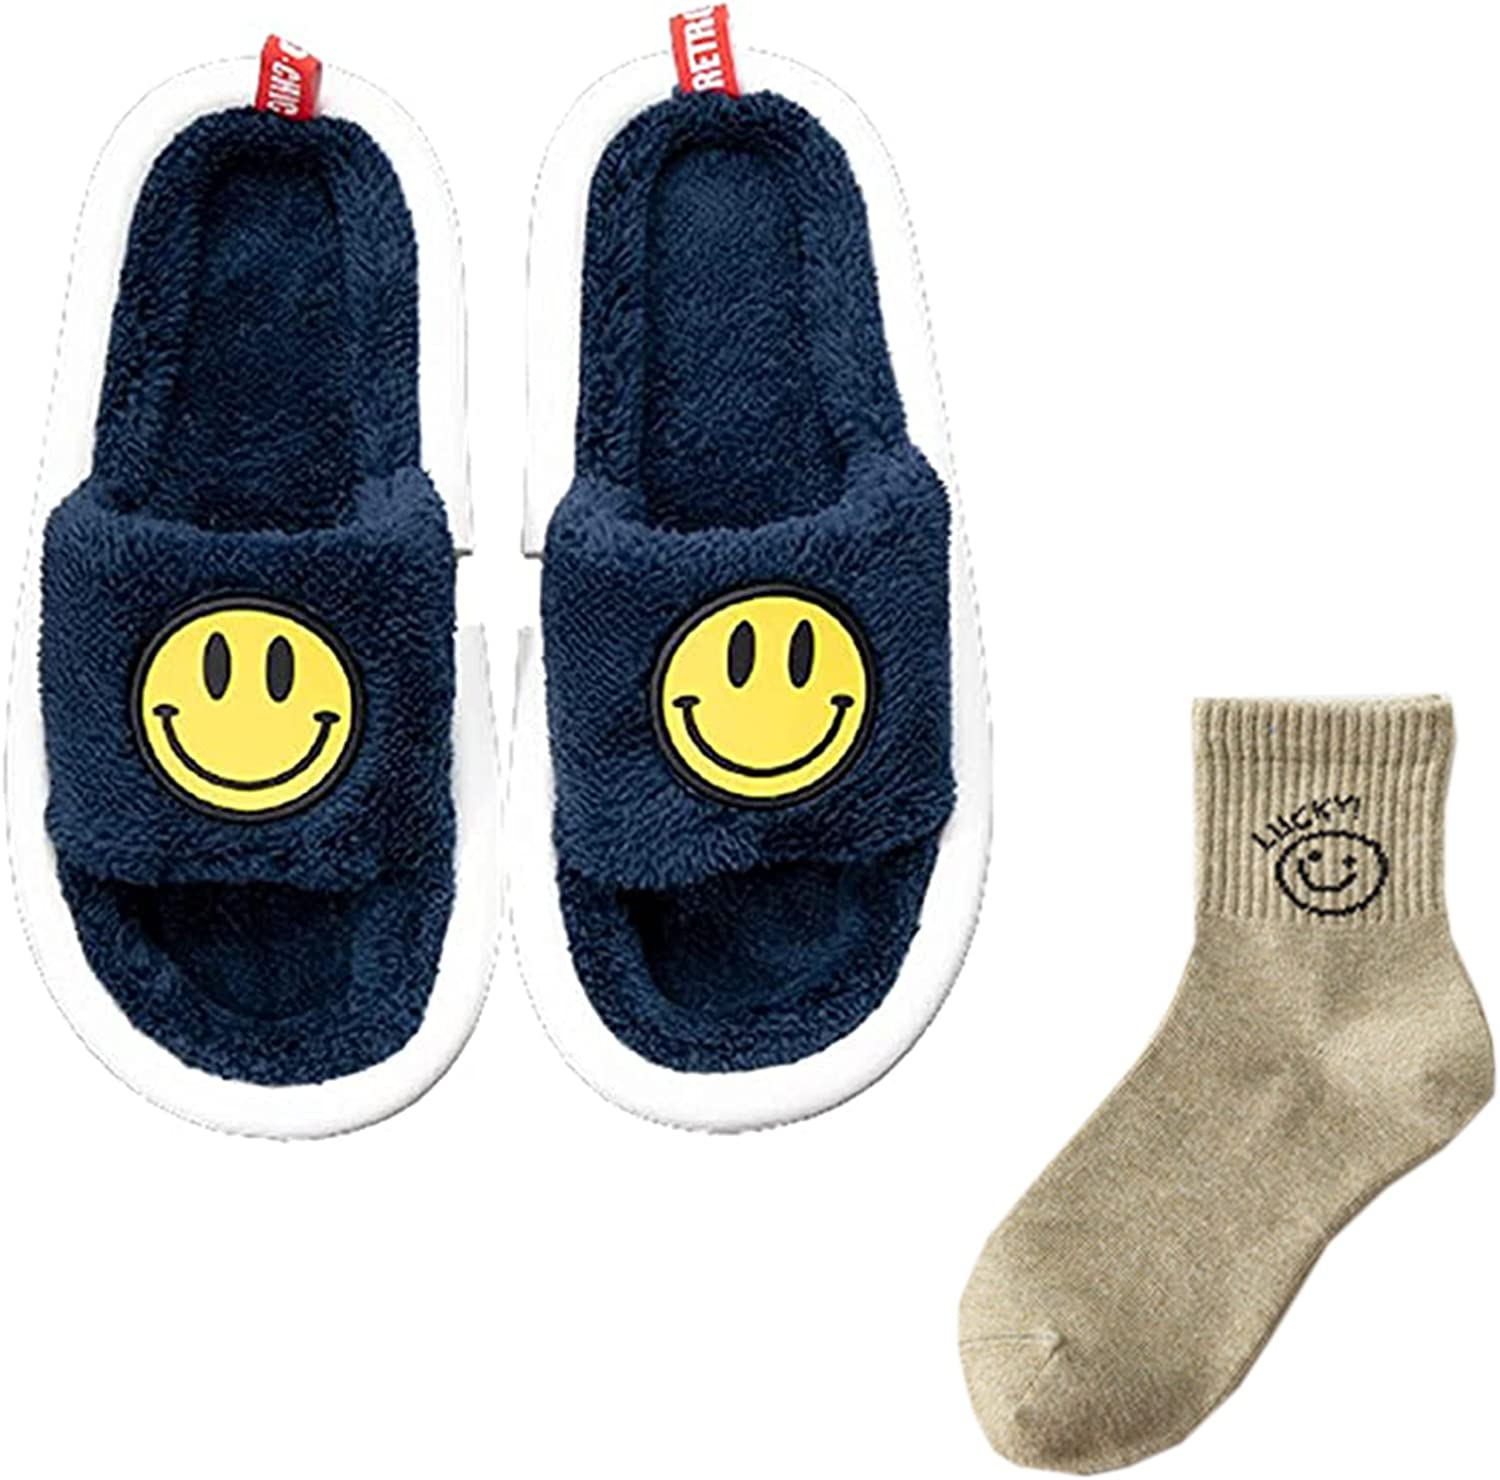 New Smiley shop Face Slippers Women's Retro New mail order Cute Open Toe Fluffy Smil